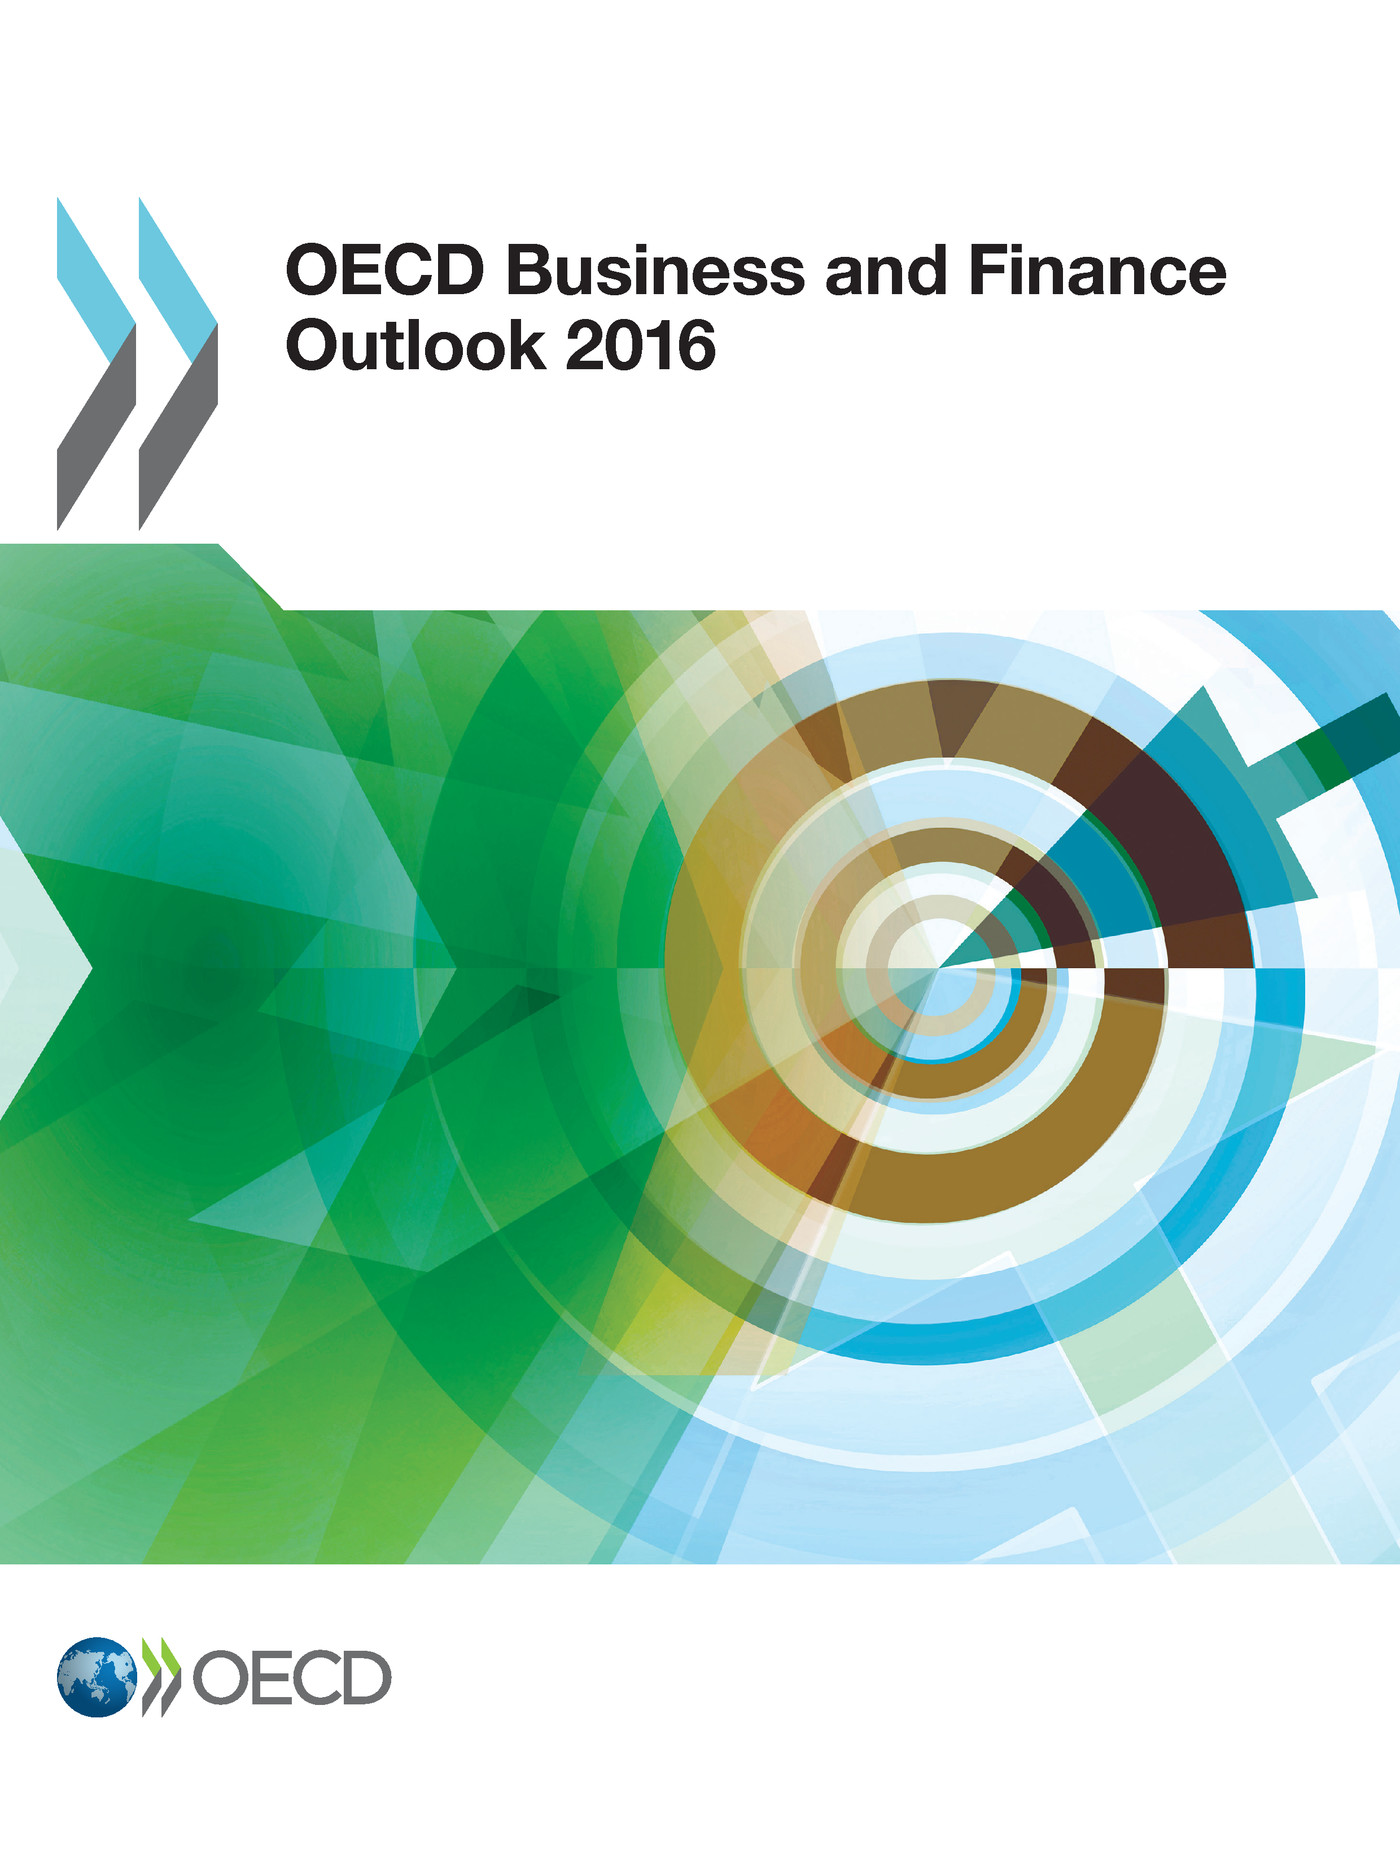 OECD Business and Finance Outlook 2016 De  Collectif - OCDE / OECD